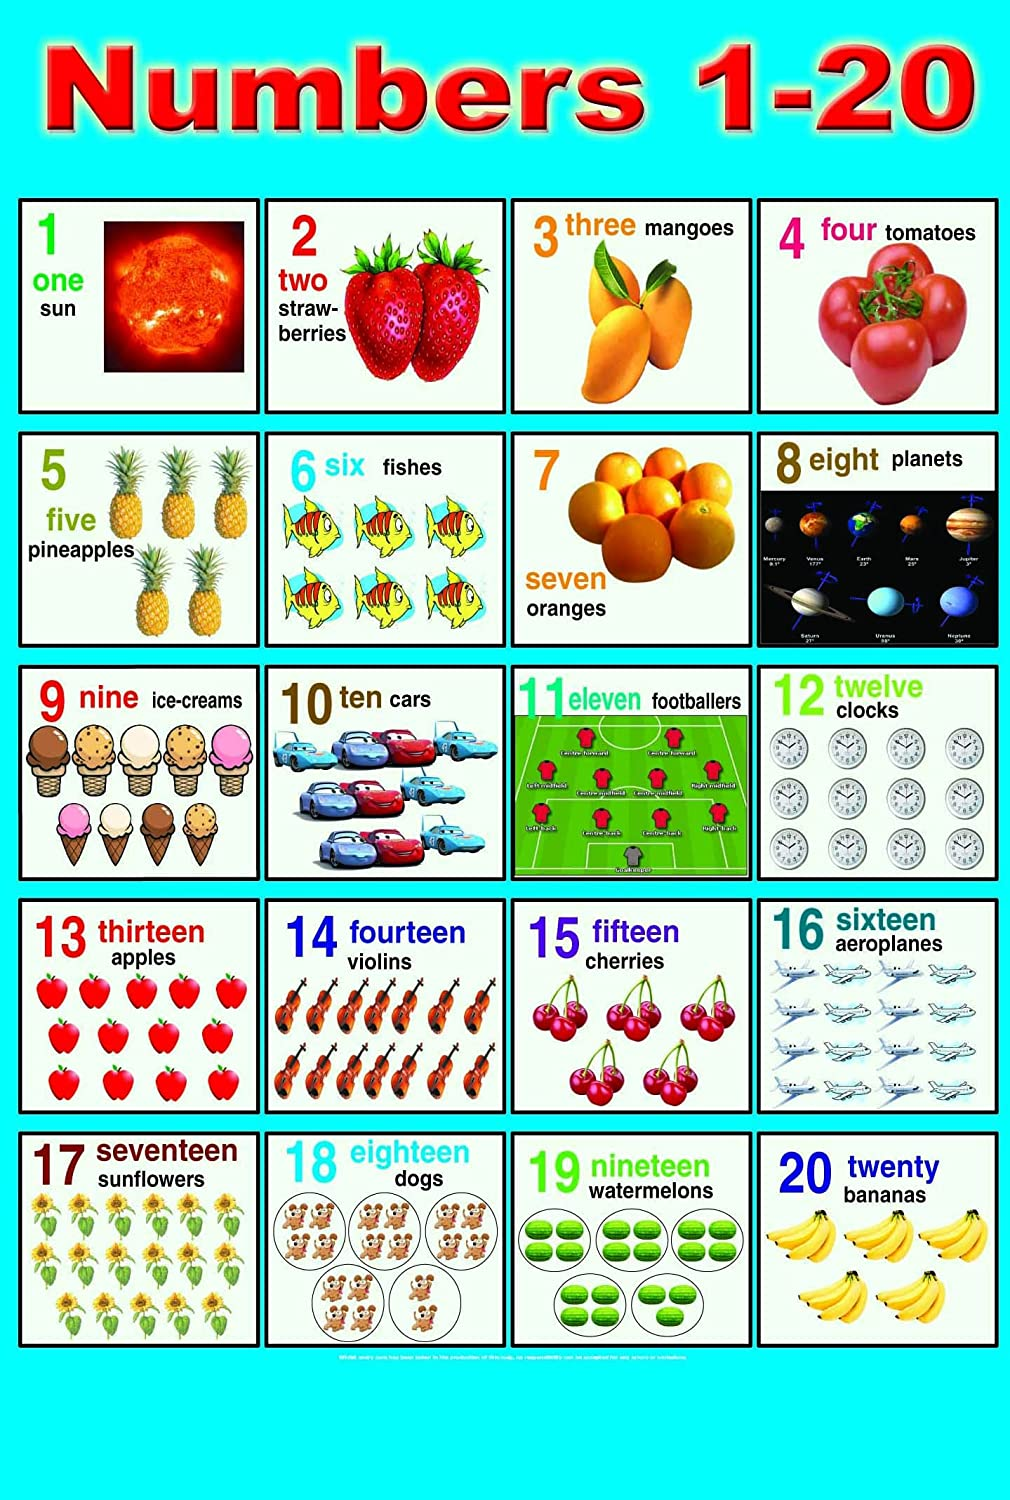 laminated numbers 1 20 poster children early learning